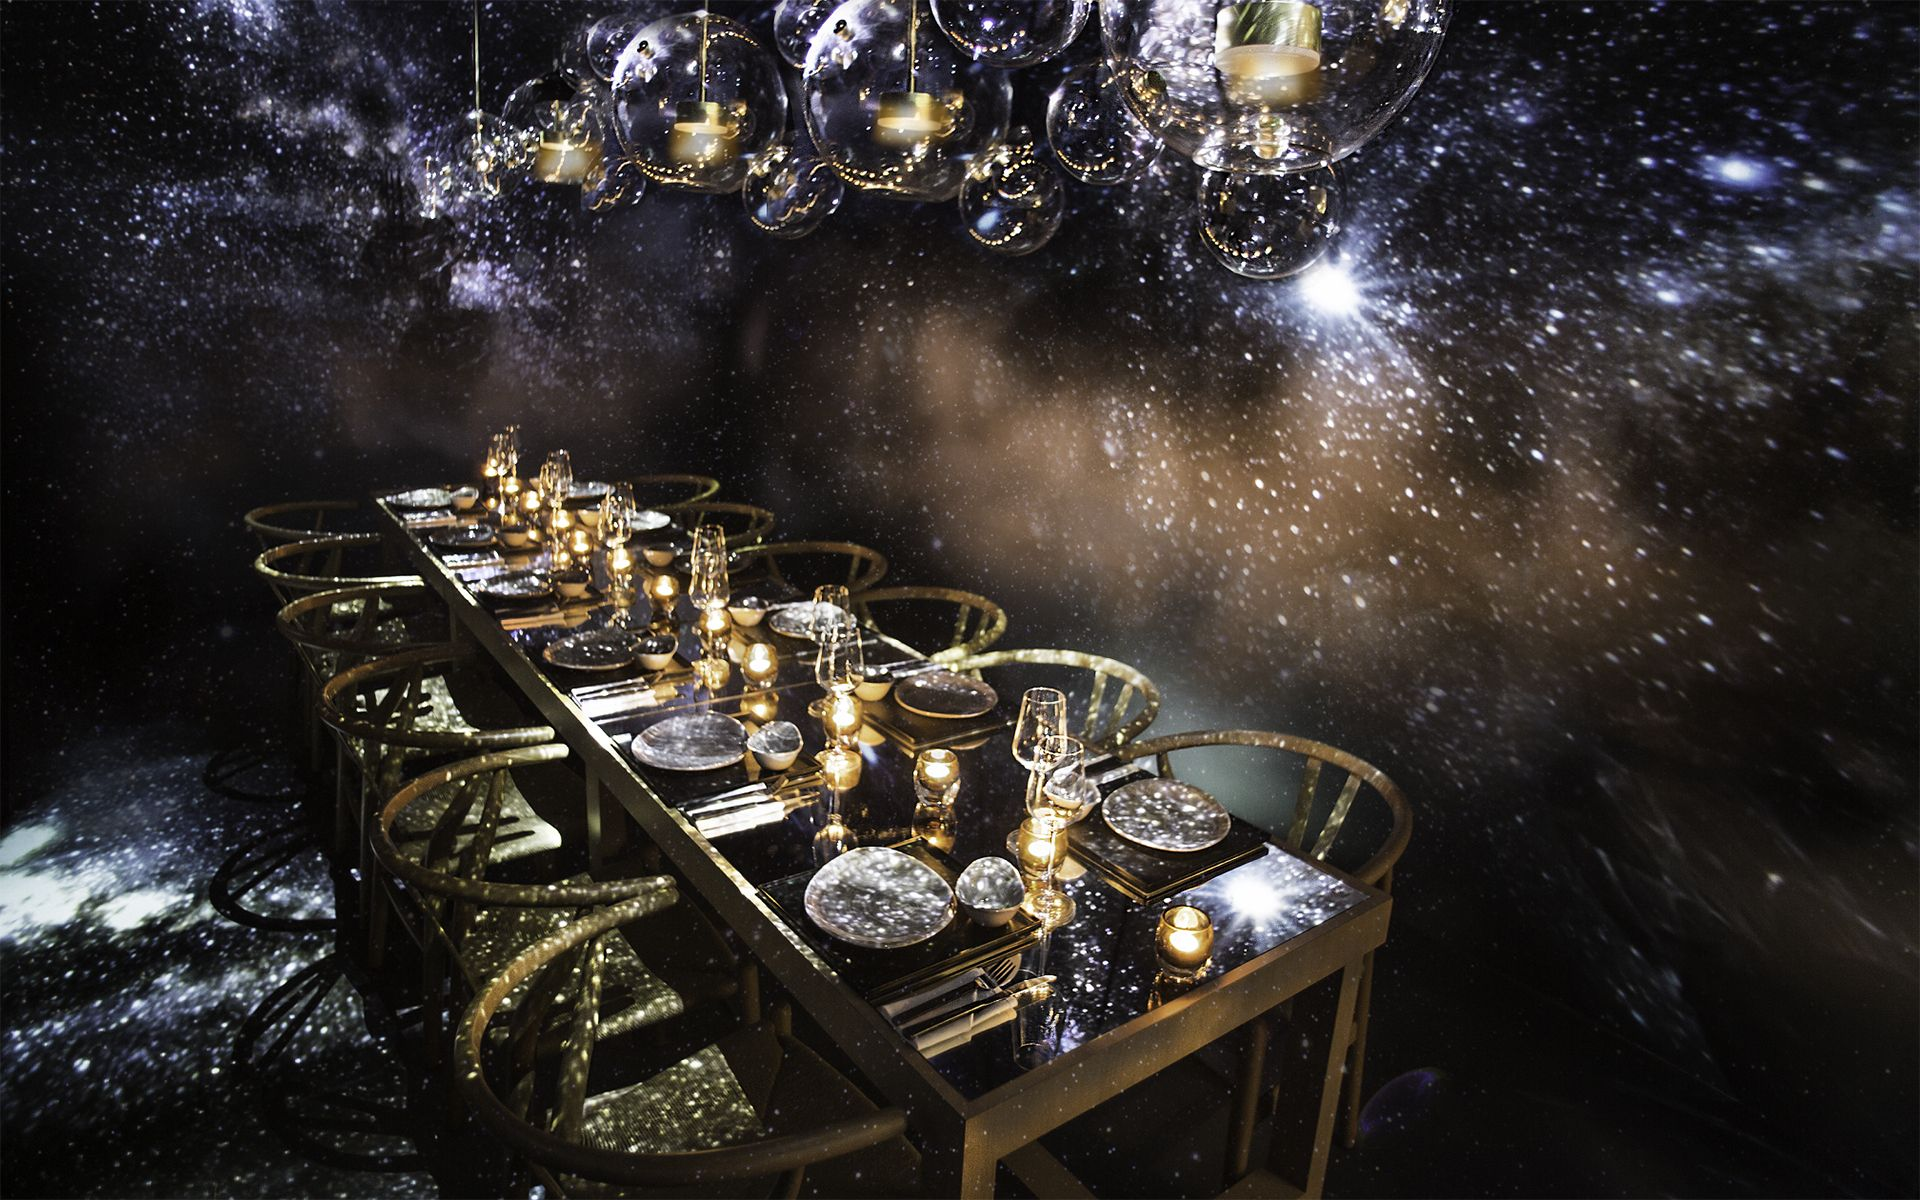 This Dining Experience Guarantees You'll 'Find Your Lucky Star' To Ring In The New Year